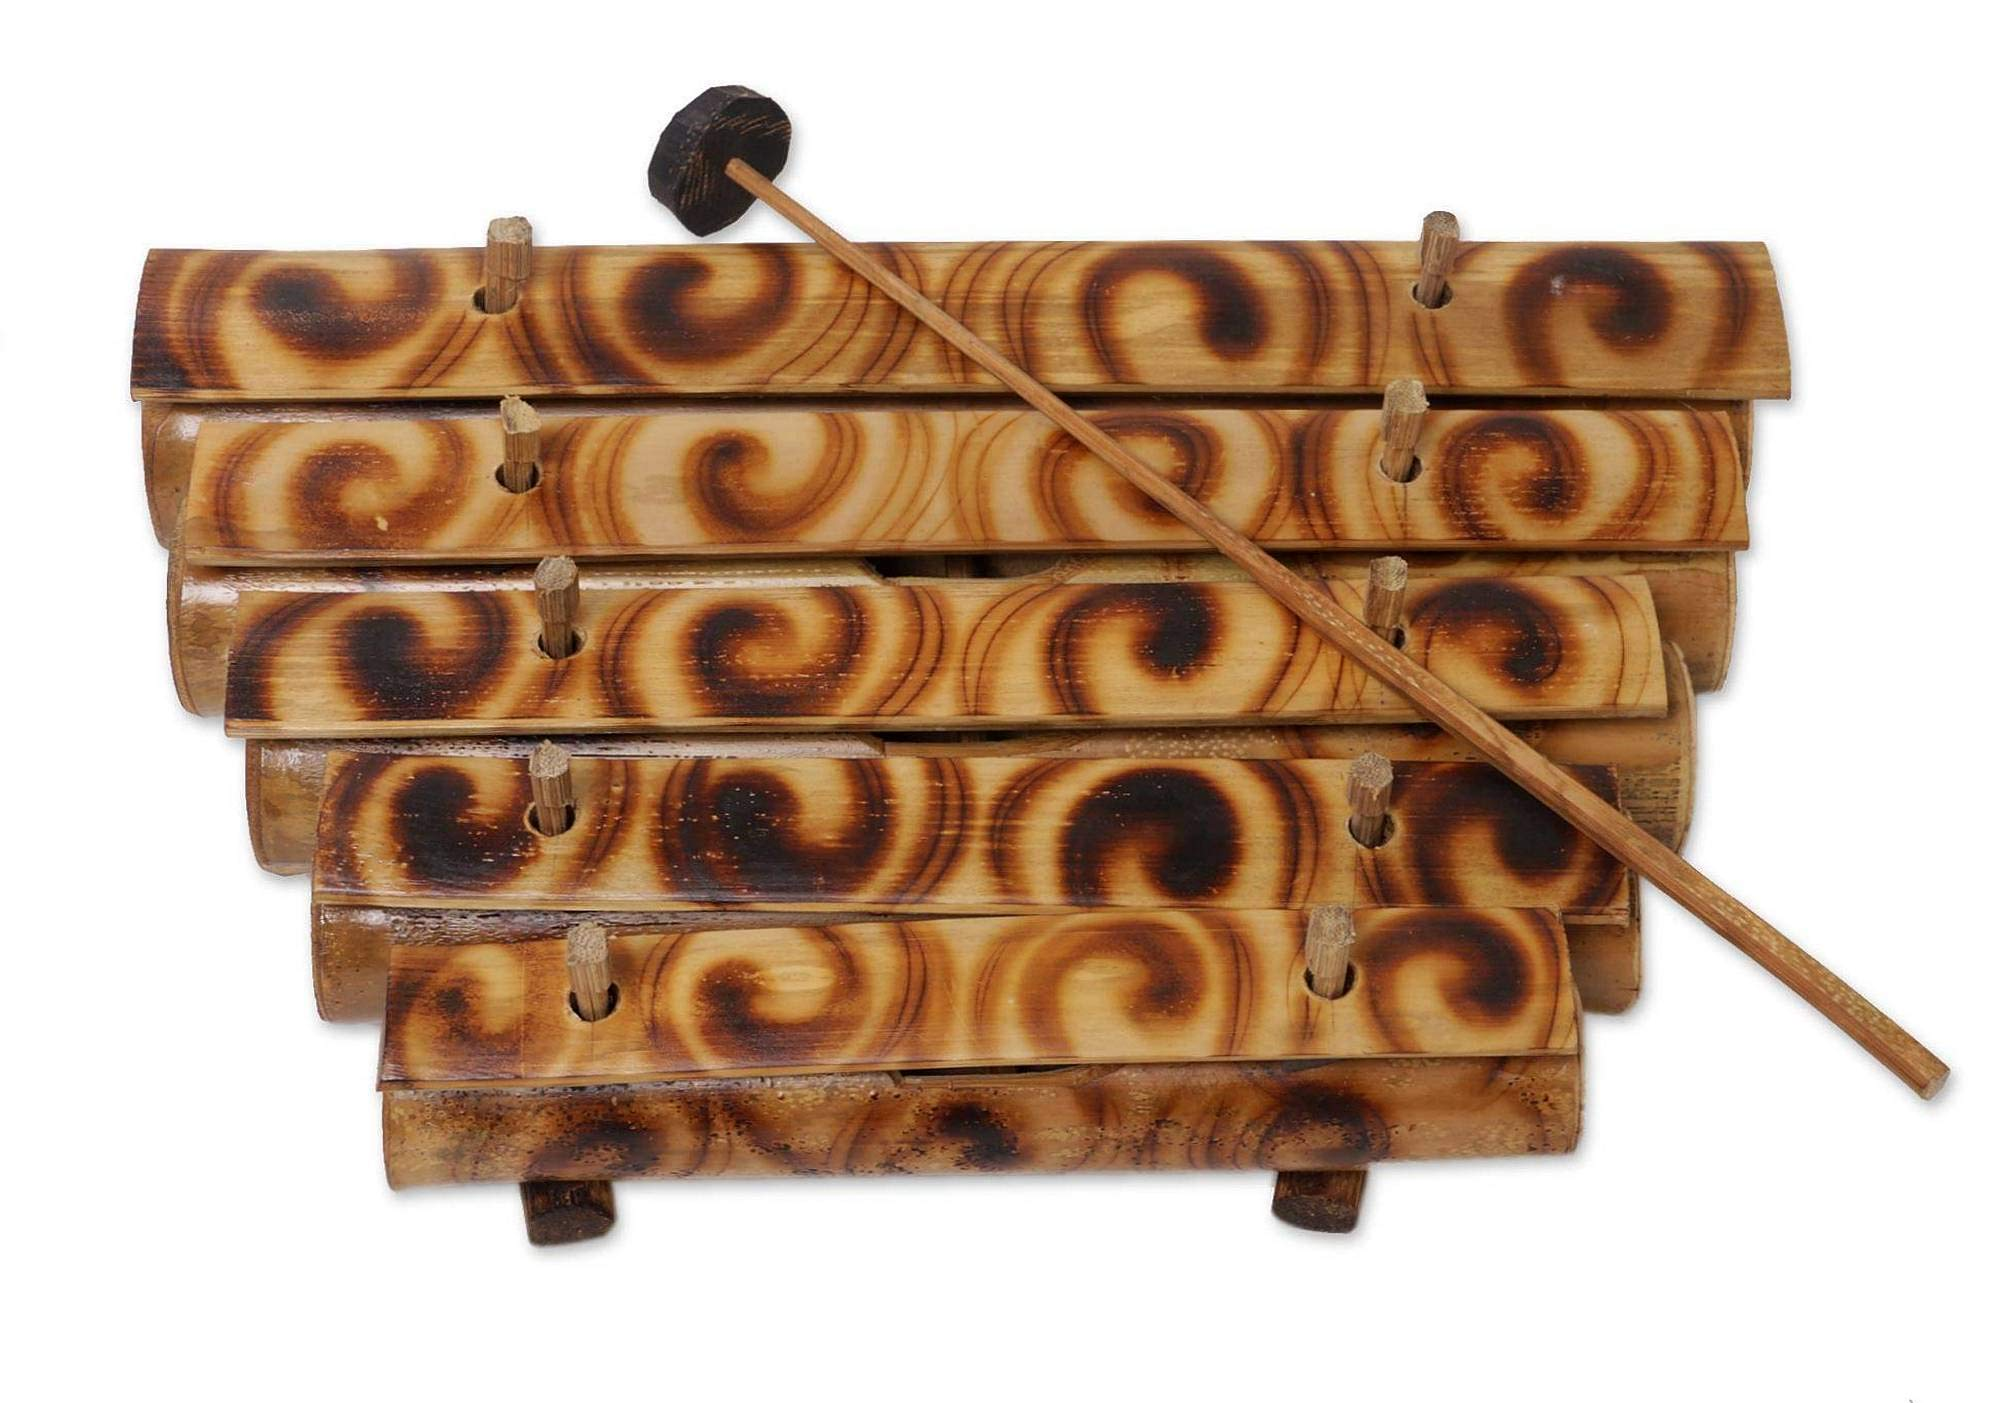 Wood Xylophone With Mallet 5 Tone Bamboo Zen Energy Chime Percussion Instrument - Large Size